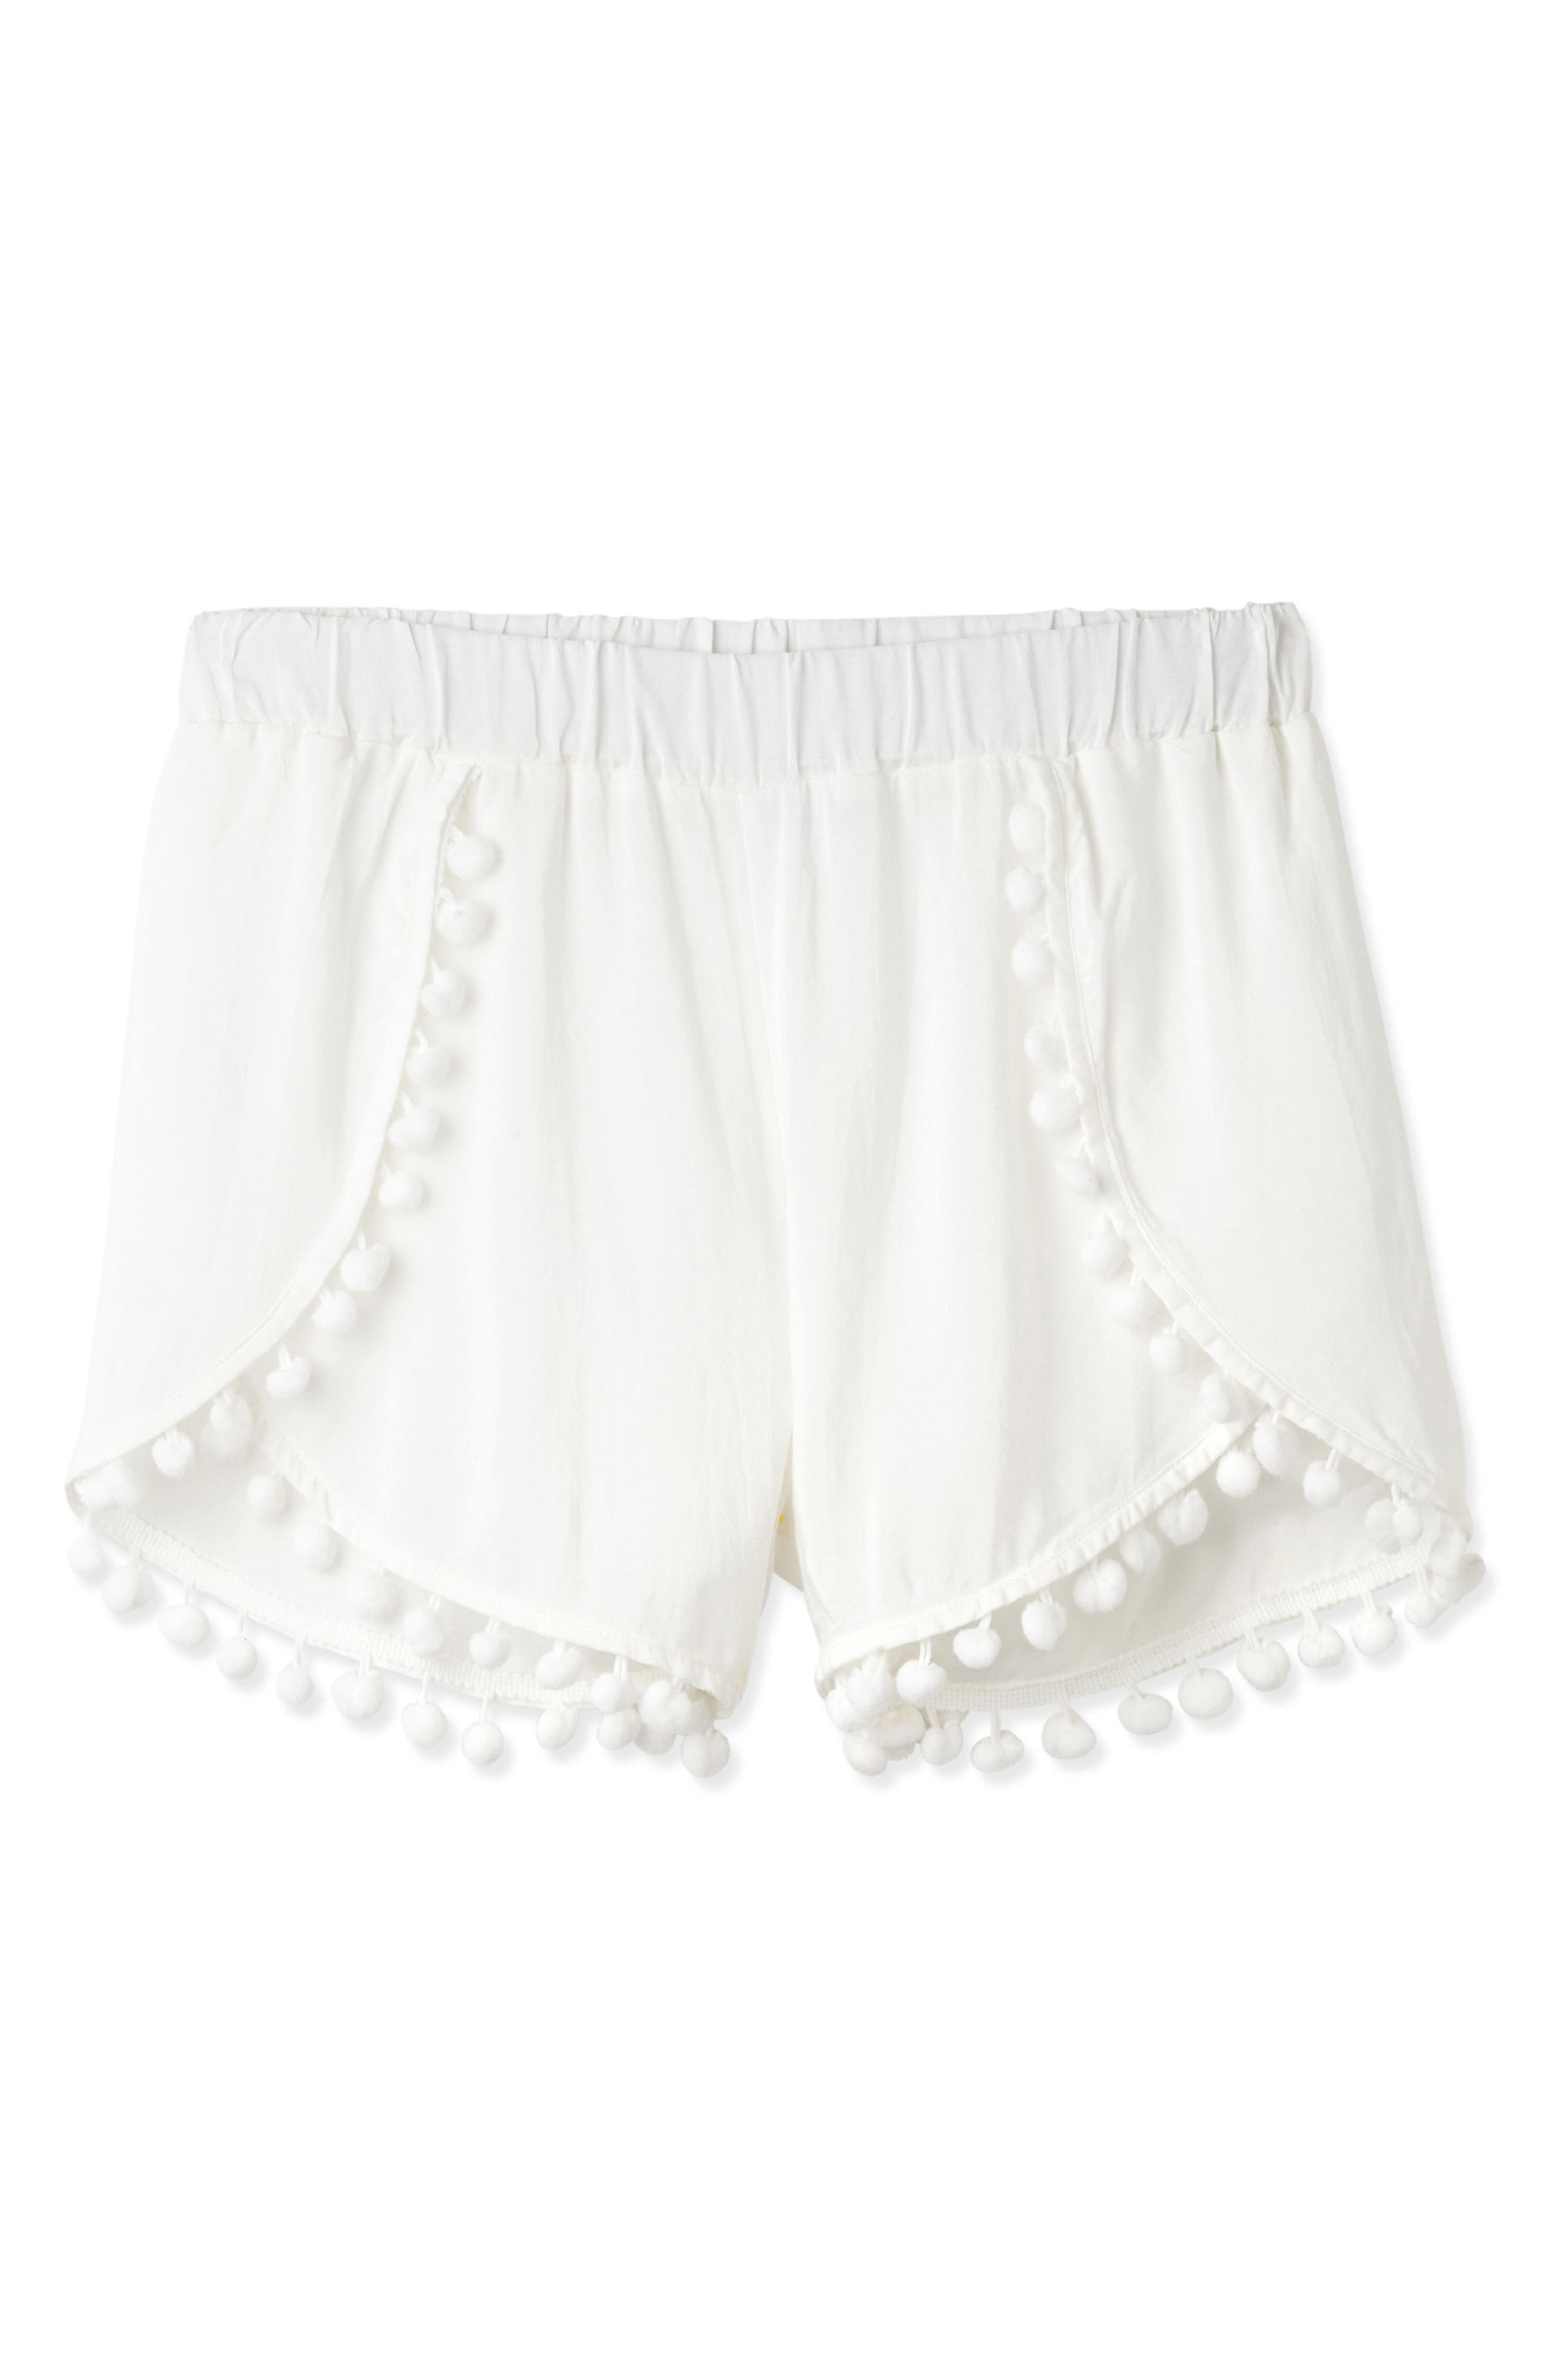 Pompom Cover-Up Shorts,                             Main thumbnail 1, color,                             100